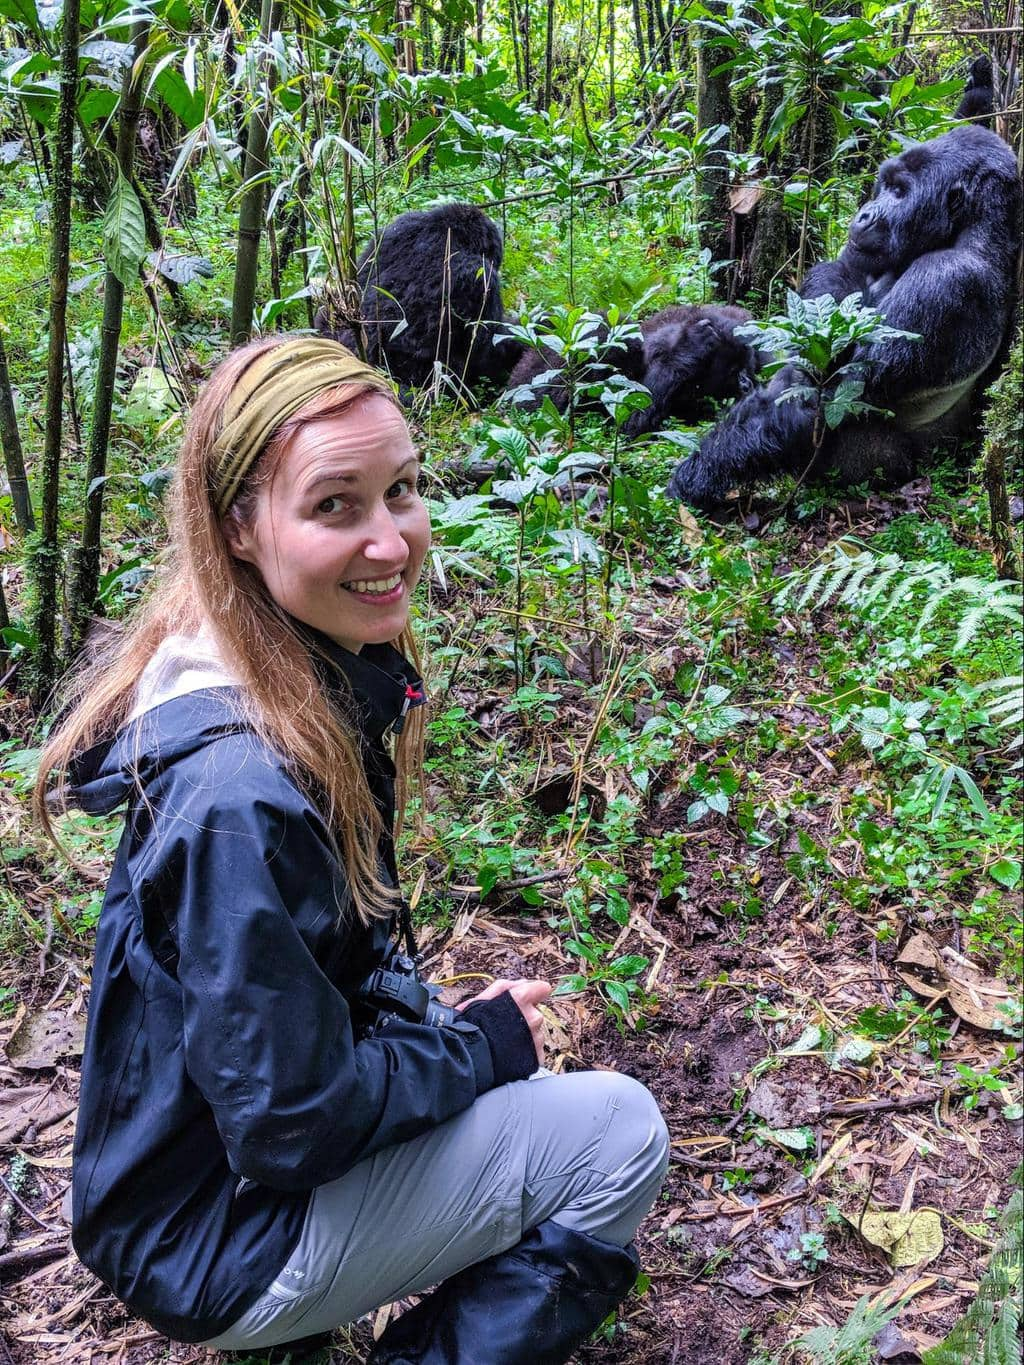 Me with the Gorillas in Rwanda